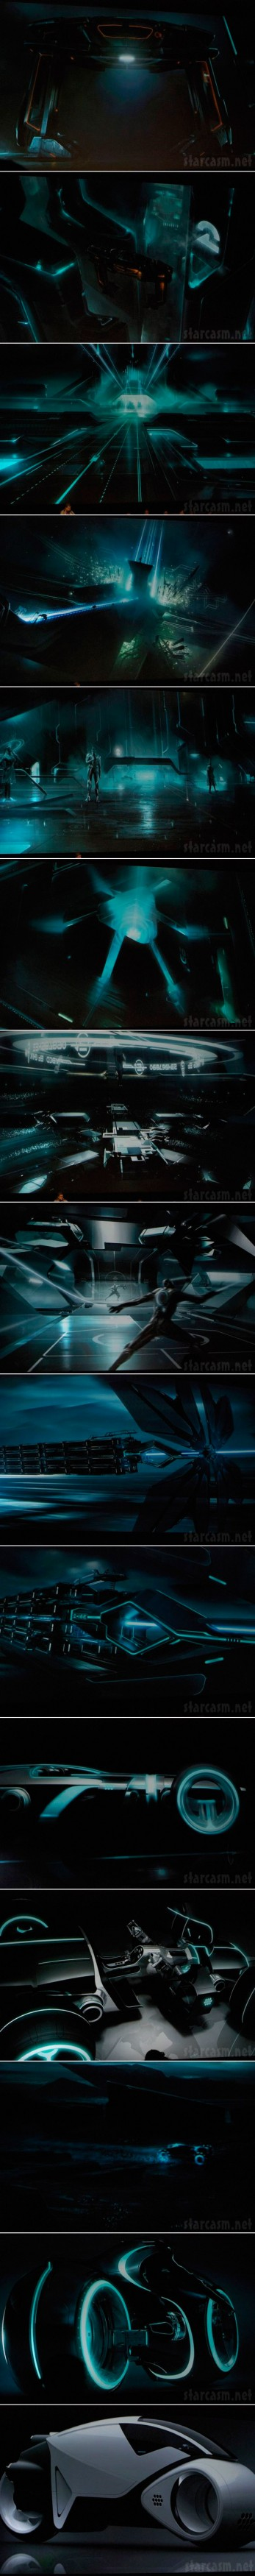 Tron Legacy production art revealed at the 2009 Comic-Con